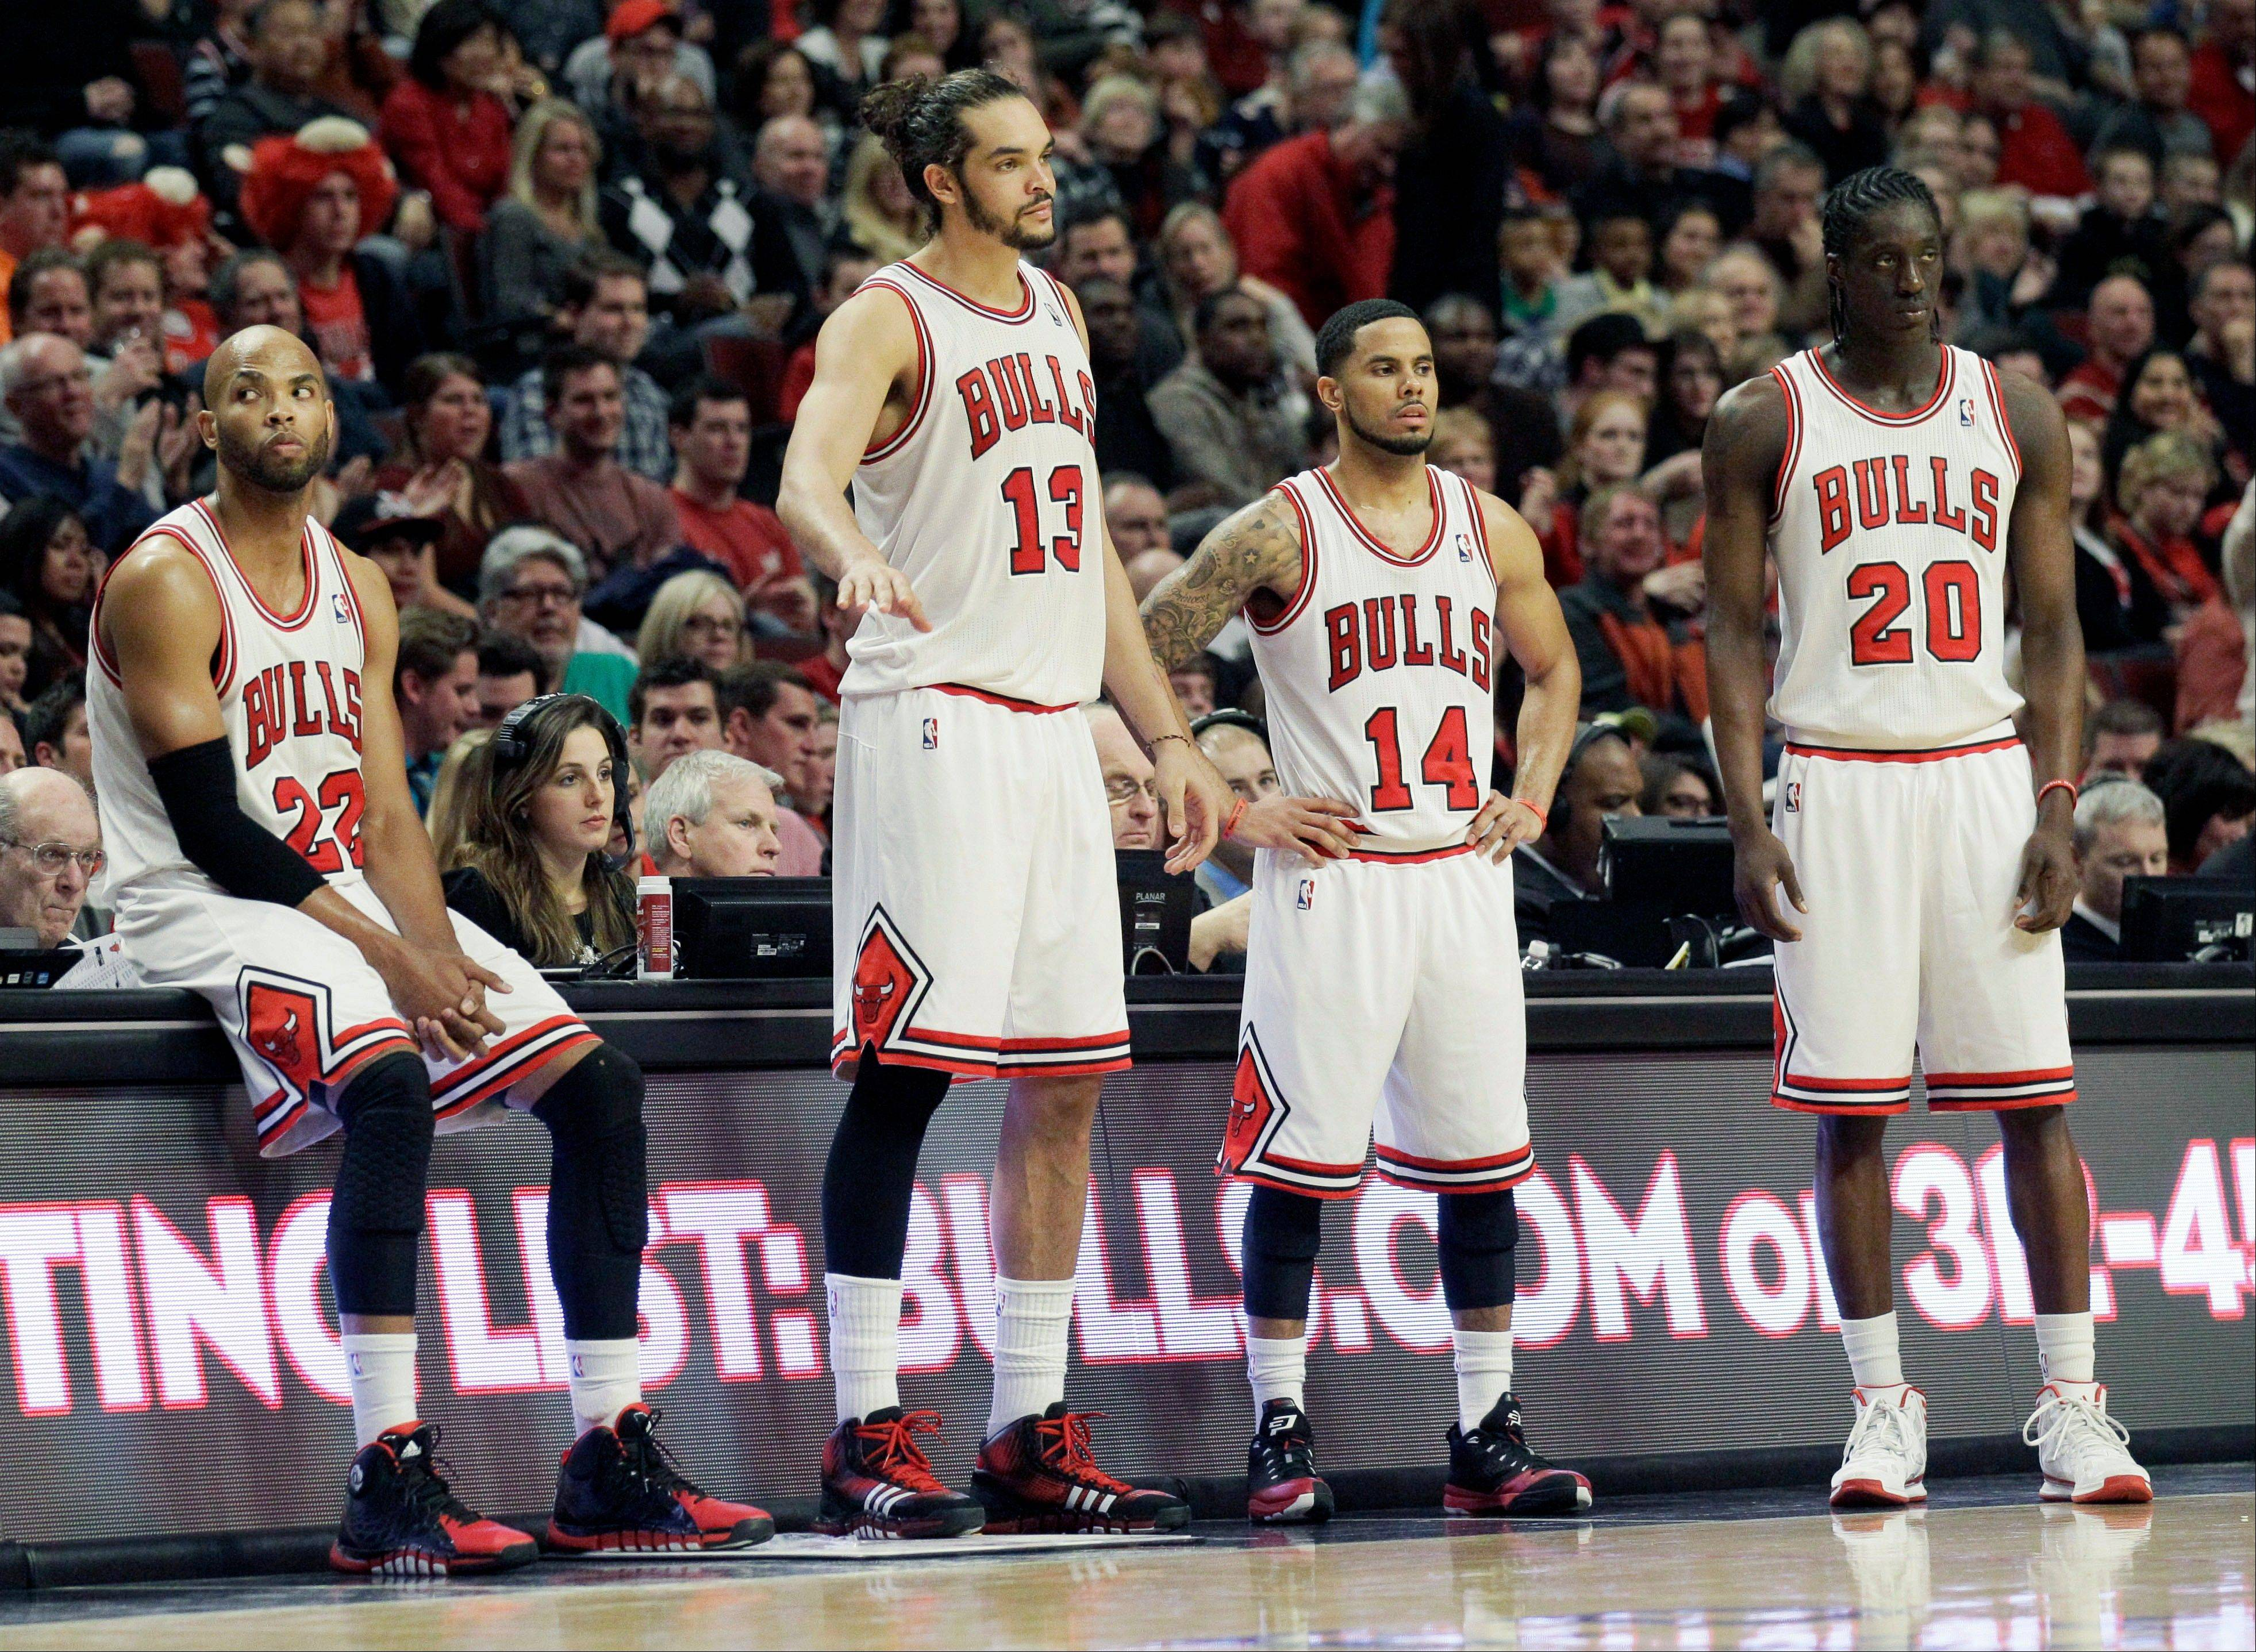 The Bulls' Taj Gibson, from left, Joakim Noah, D.J. Augustin and Tony Snell react to just how bad things were going in Saturday night's loss to the Dallas Mavericks.